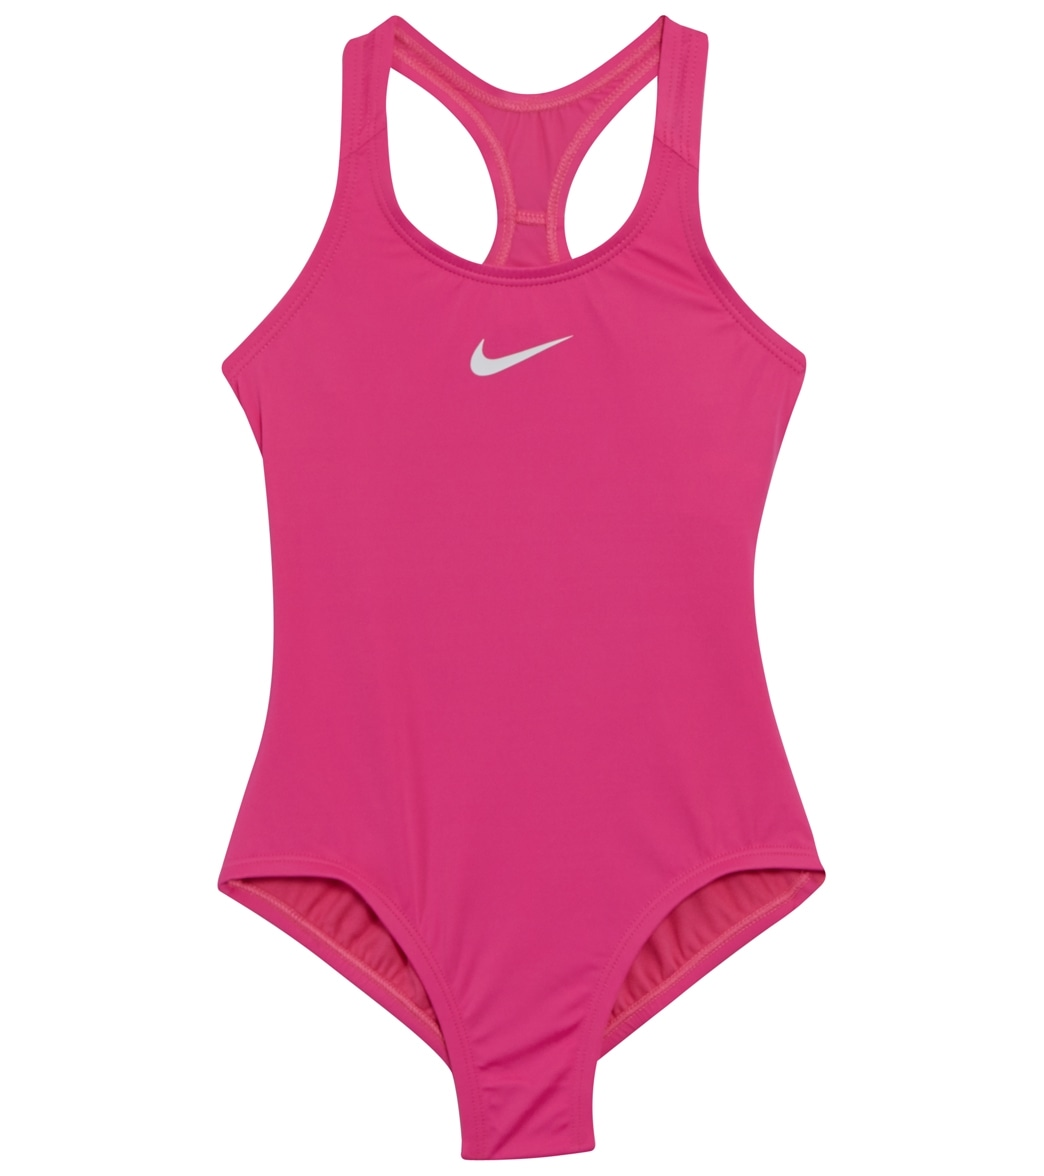 488a26f2fe56e Nike Girls' Racerback One Piece Swimsuit (Big Kid) at SwimOutlet.com